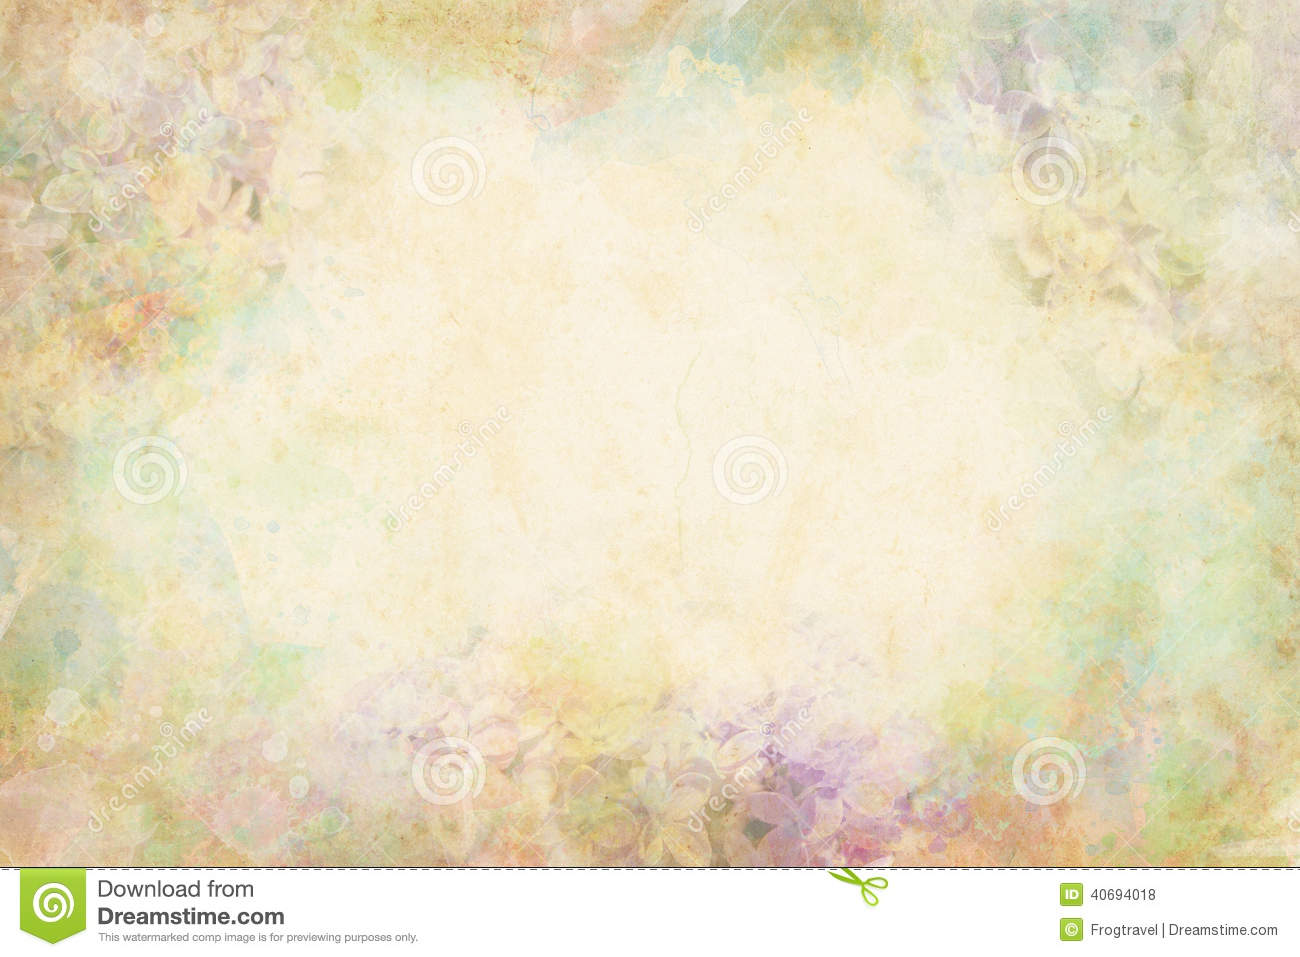 Watercolor Flowers Stock Illustration - Image: 40694018